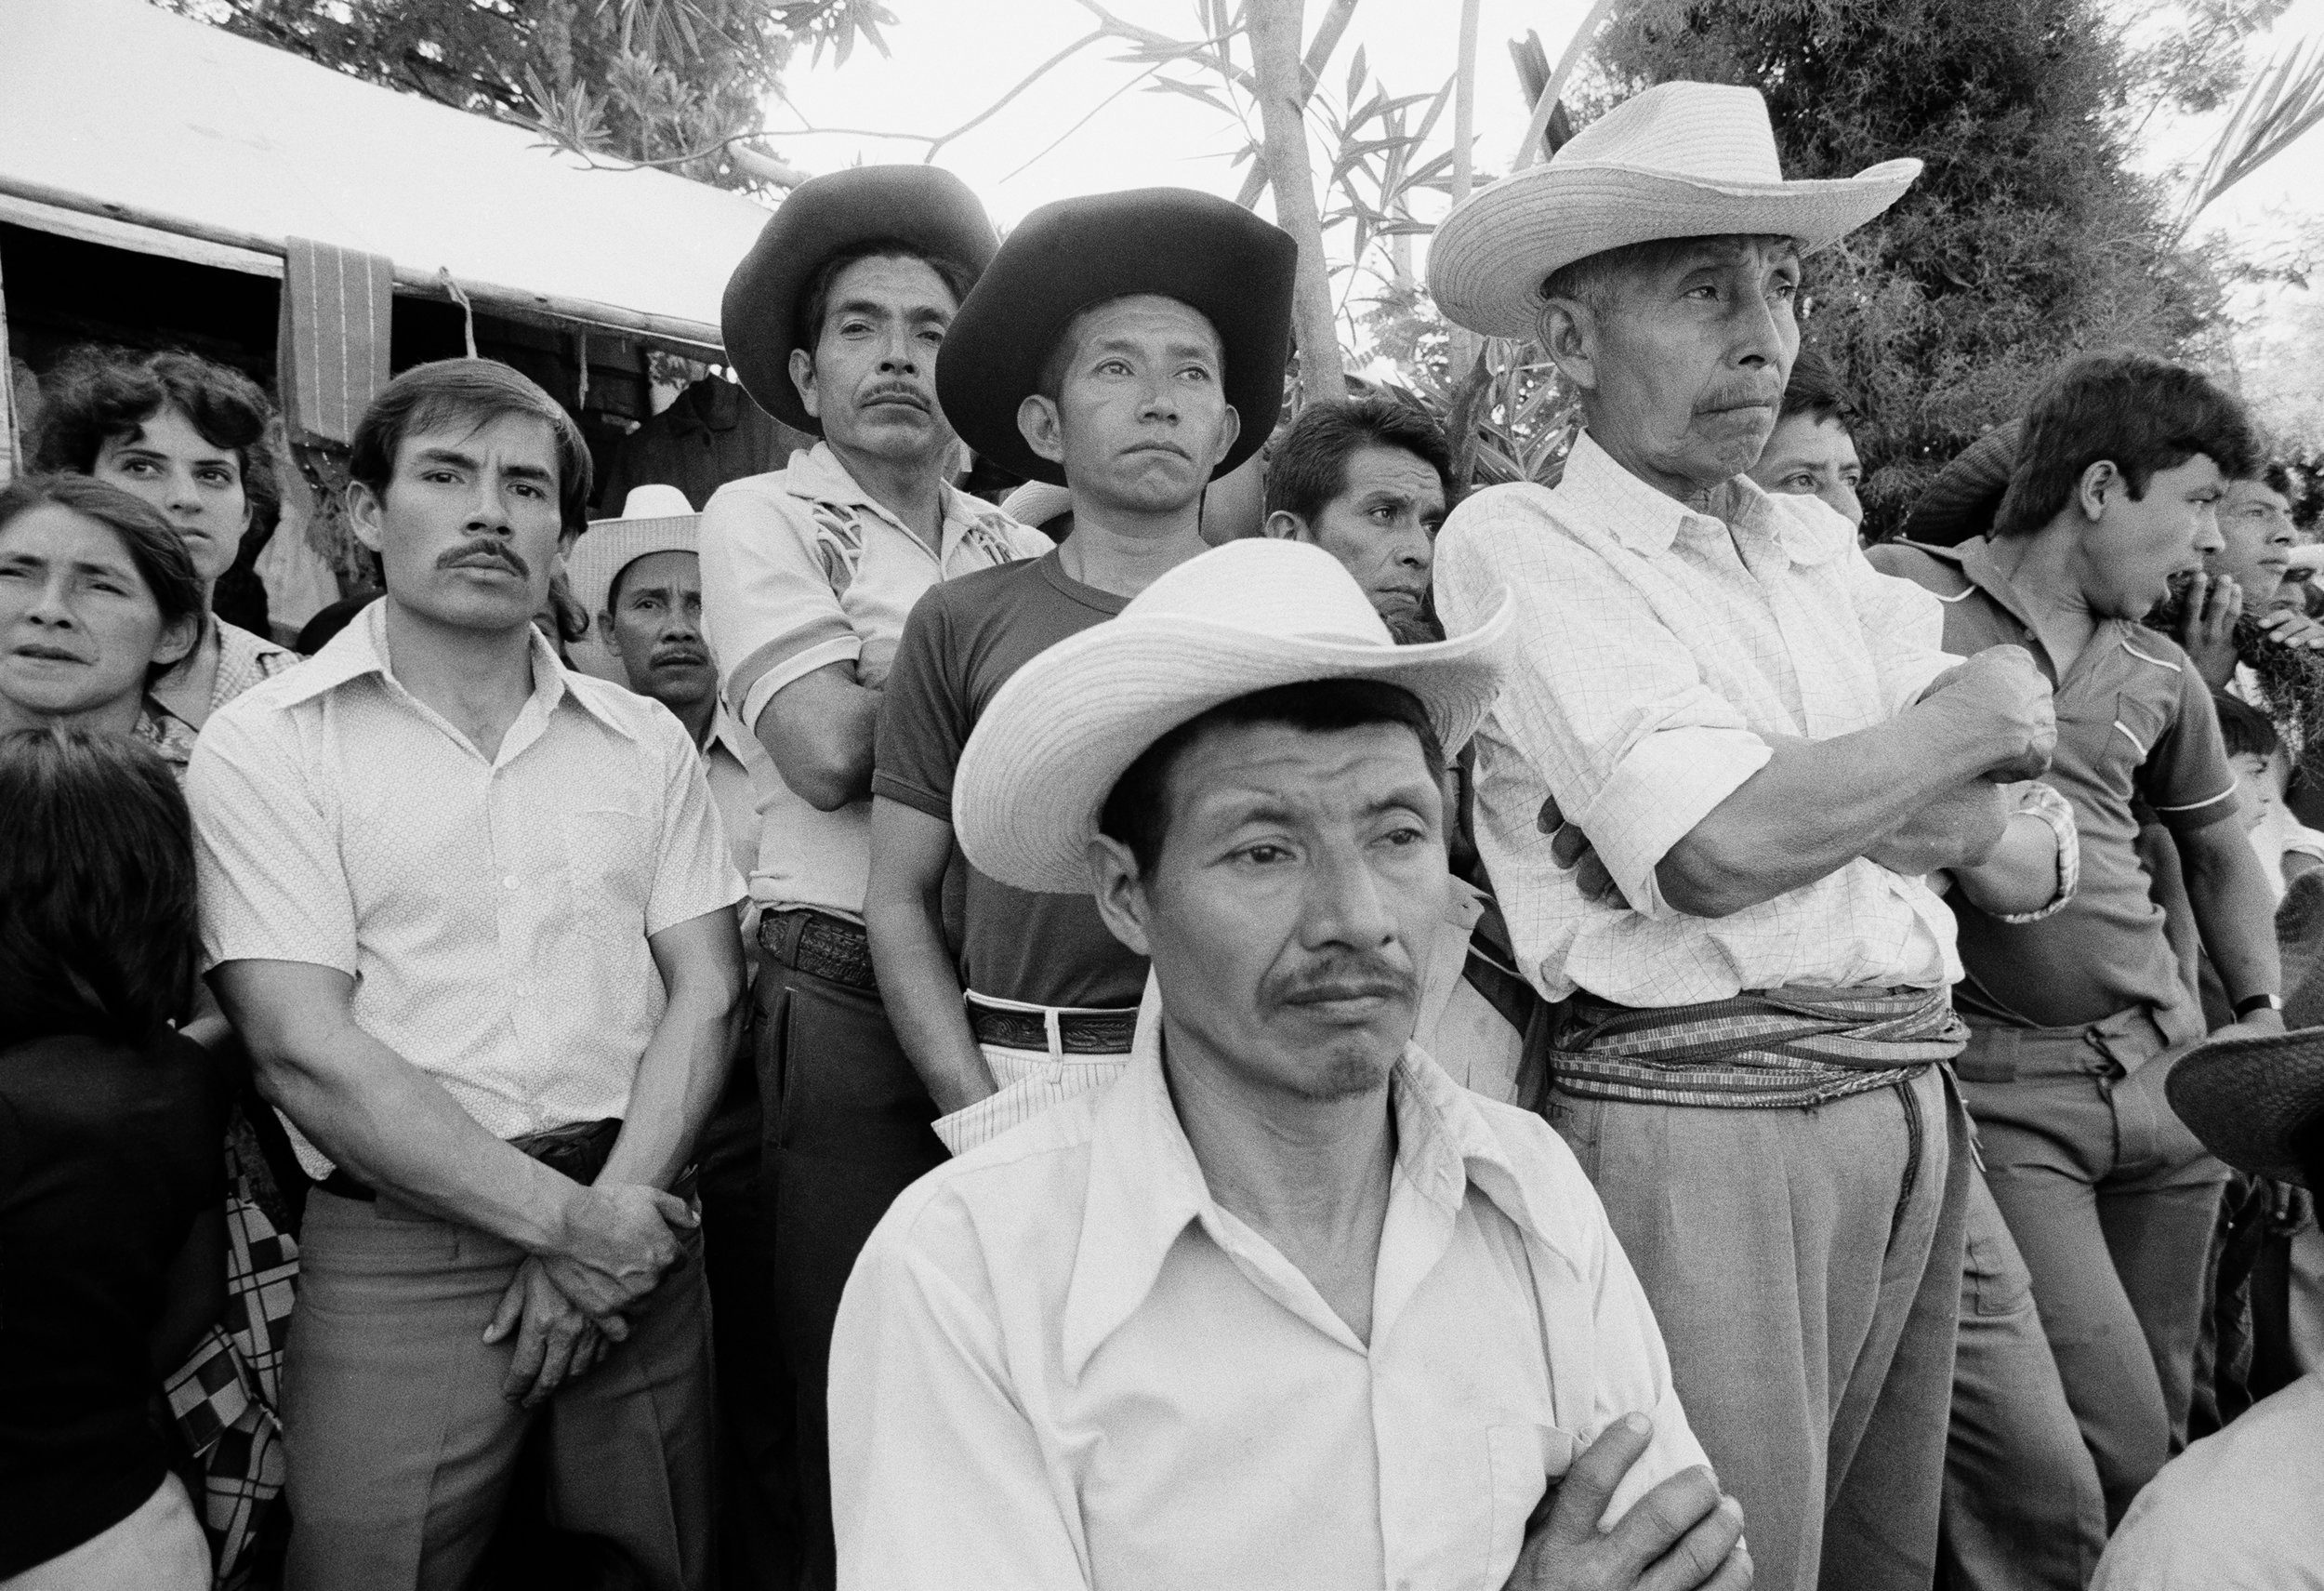 A crowd in Sololá, Guatemala listen to speeches from the expected candidate General Ángel Aníbal Guevara during the presidential election campaign, February 26, 1982. Handpicked to succeed outgoing president Fernándo Romeo Lucas García, Guevara was declared the winner of the election on March 7, 1982, which was then widely denounced as fraudulent. A military coup d'état on March 23, 1982 led by General Efraín Ríos Montt prevented him from assuming power.